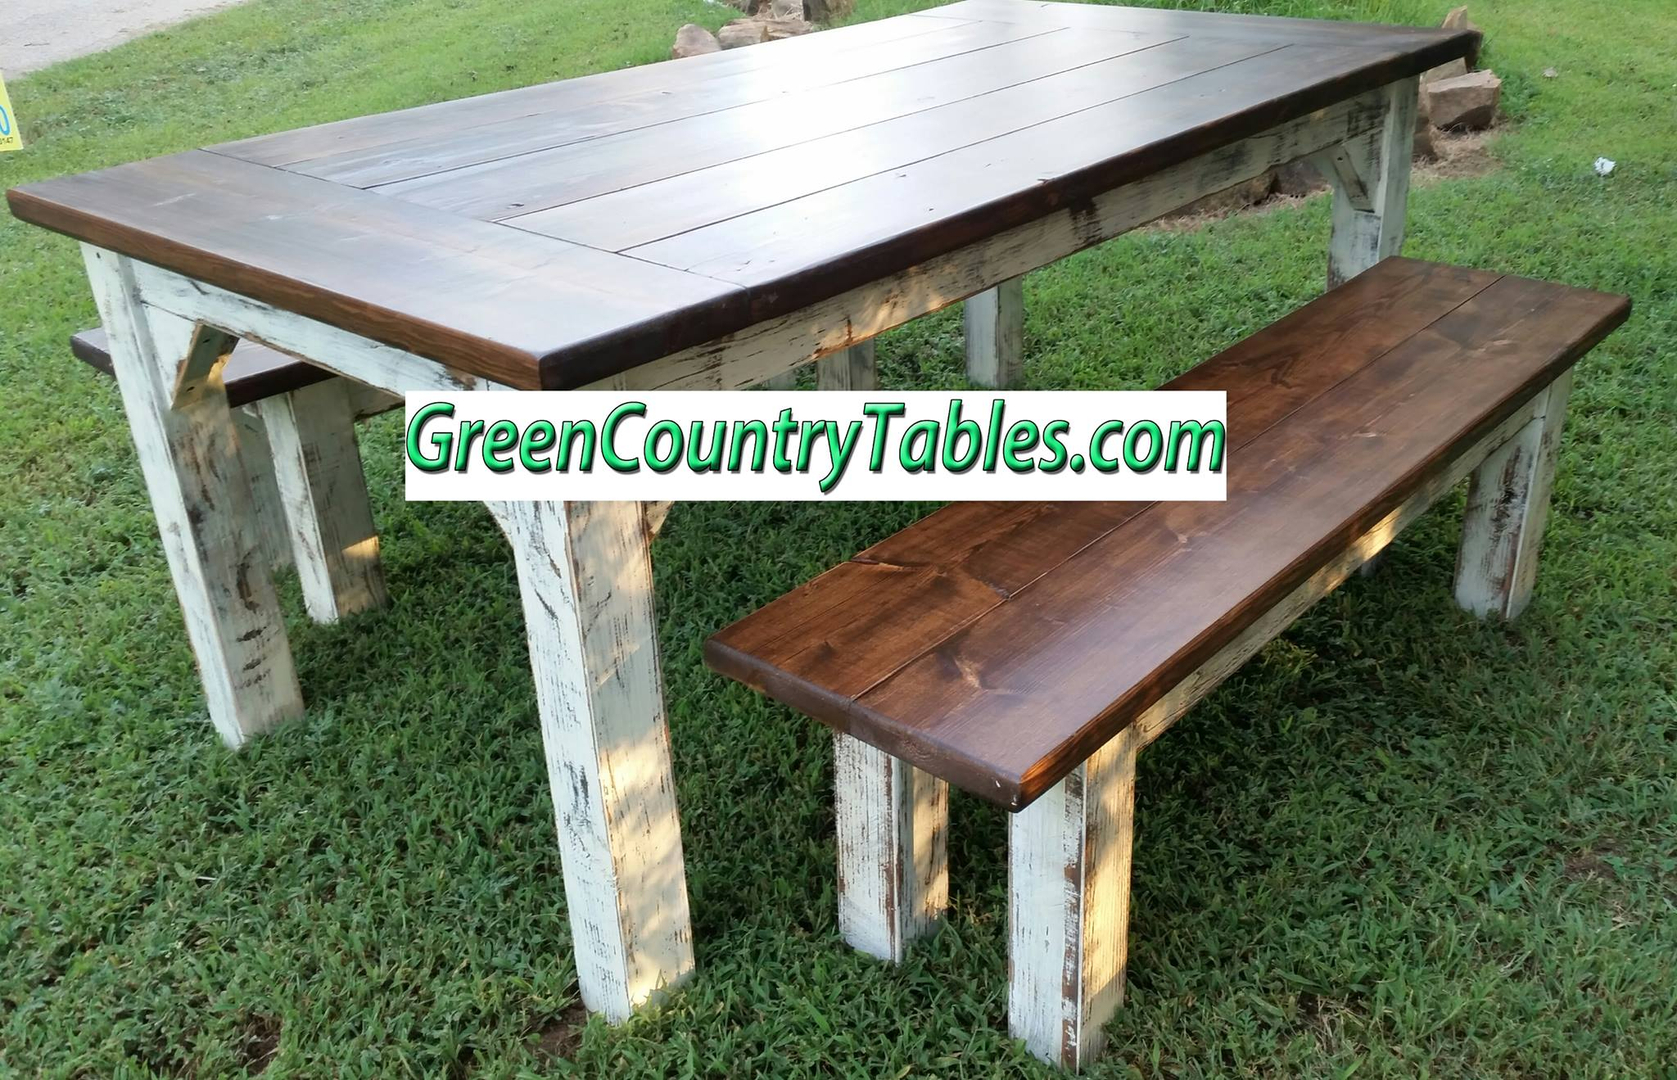 Finishes Stain Colors Paints Ideas And More - Picnic table paint colors